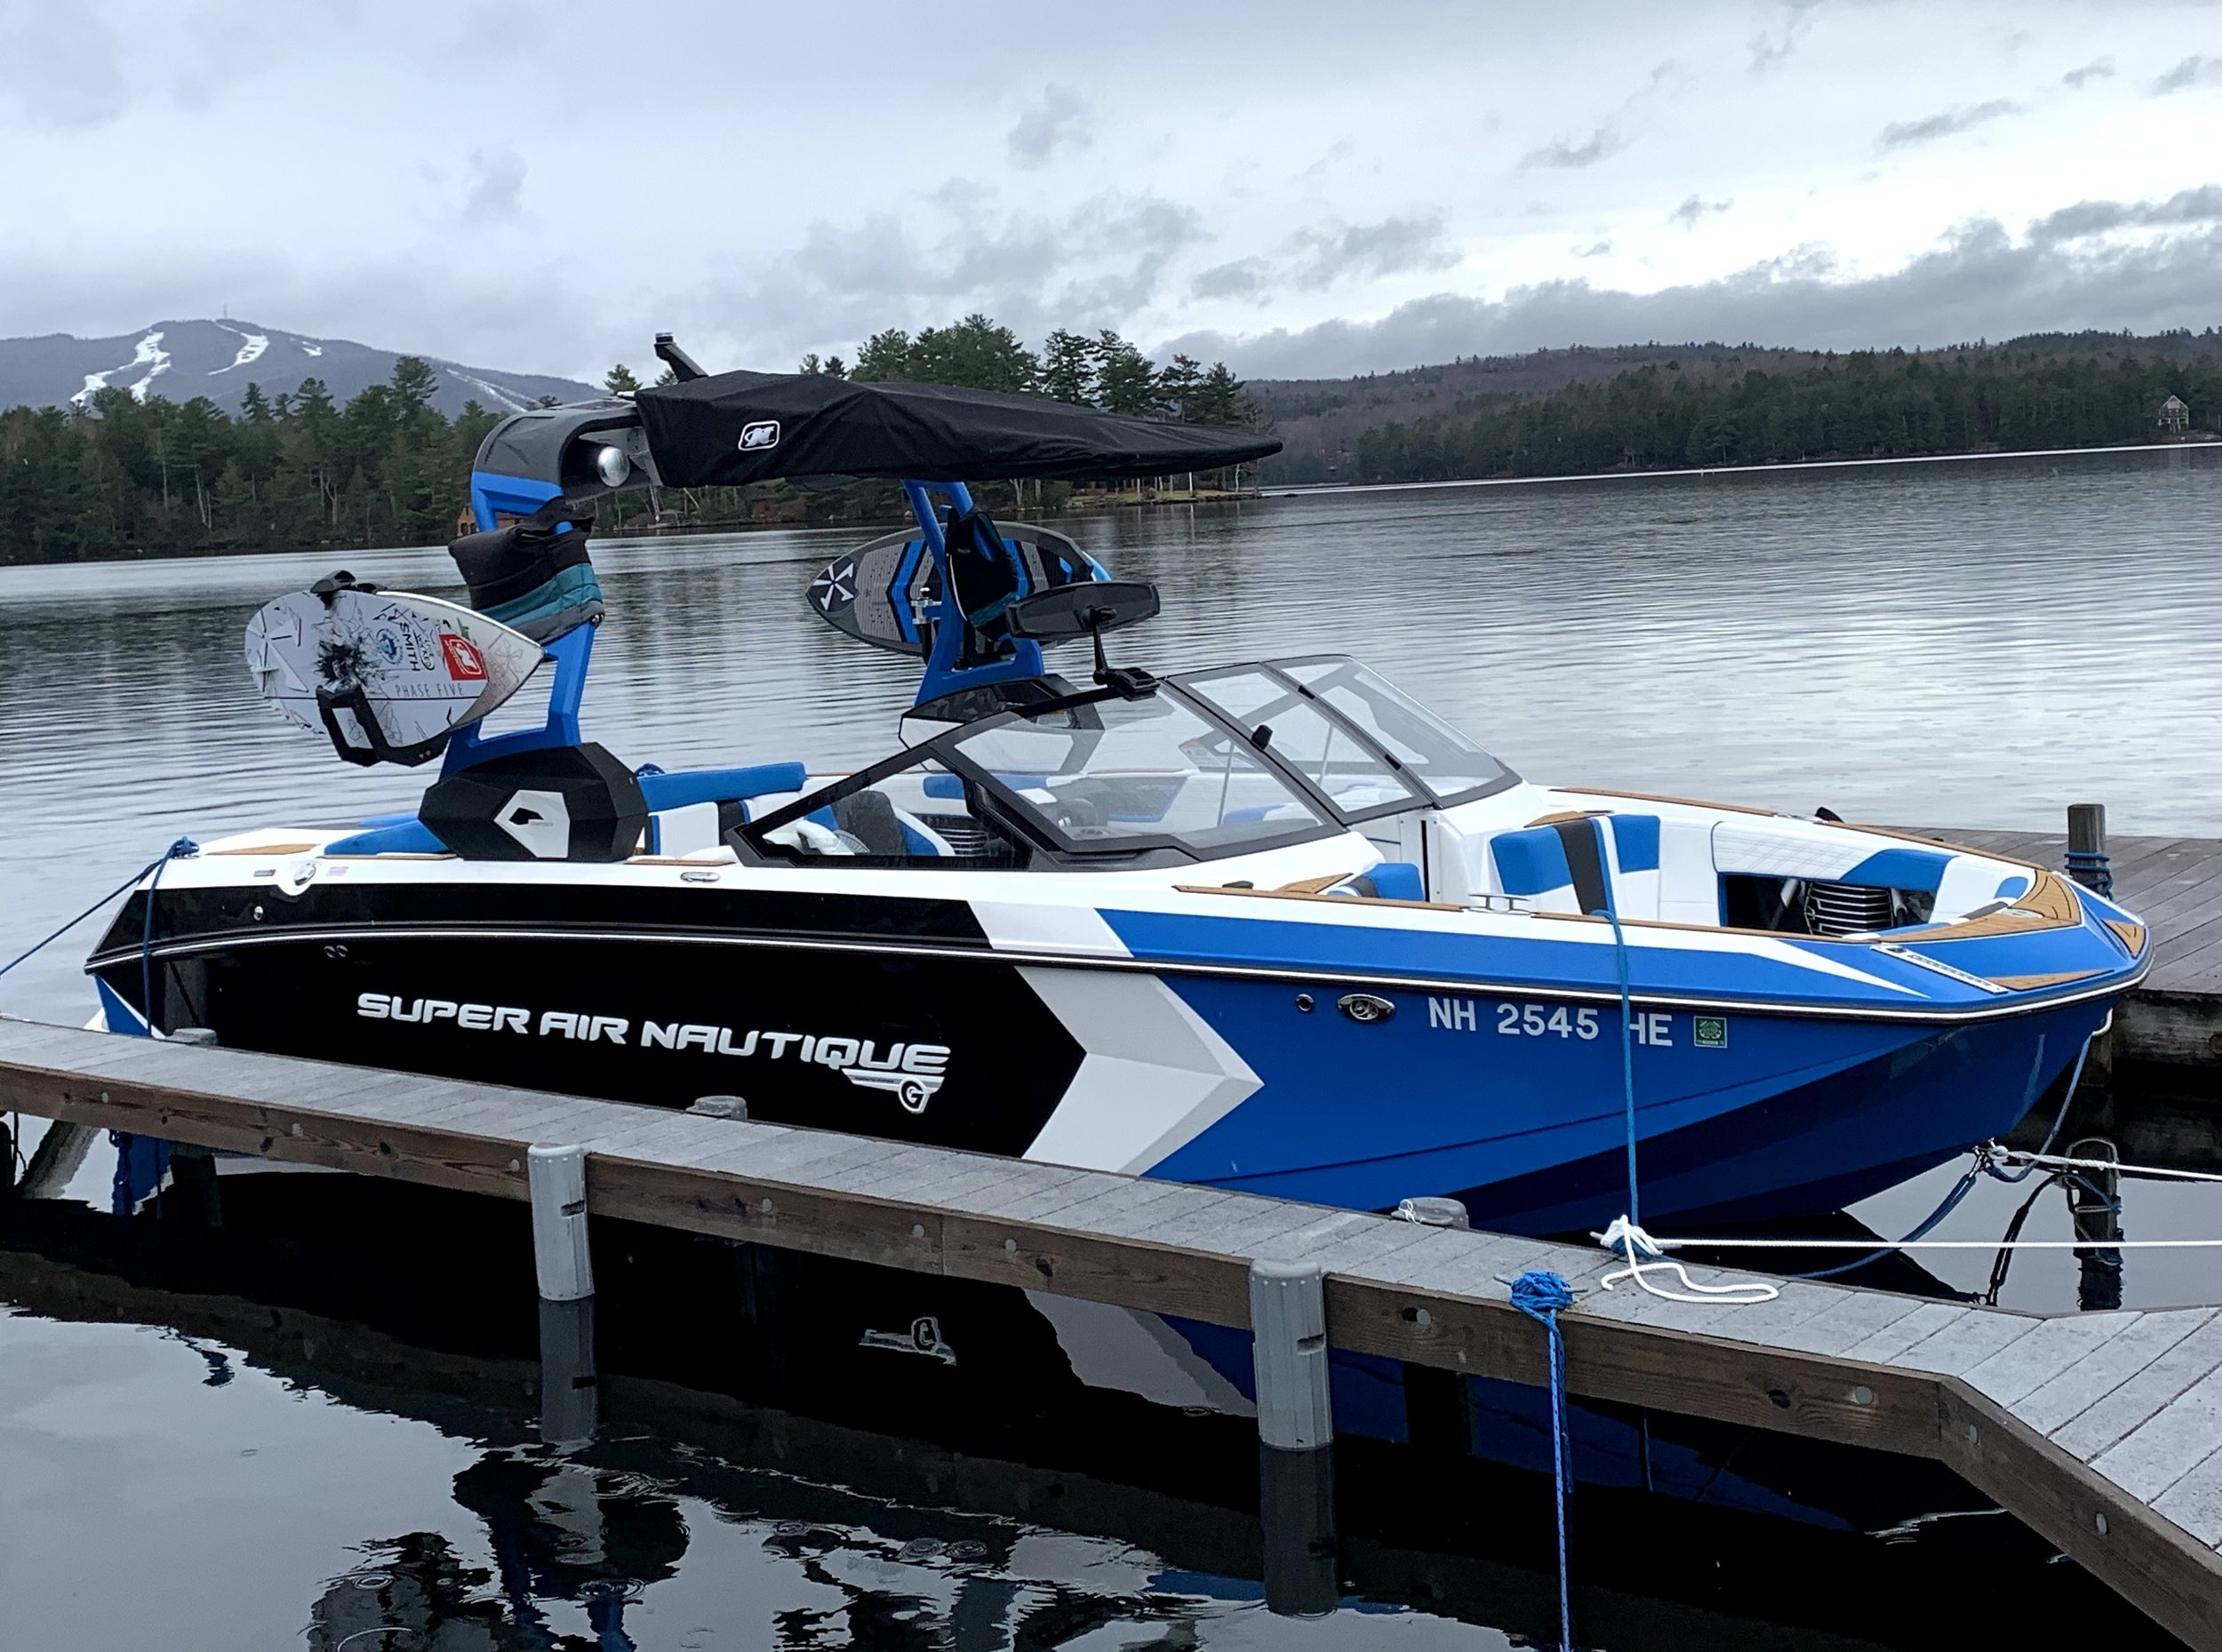 Super Air Nautique G23 Wakesurf Boat